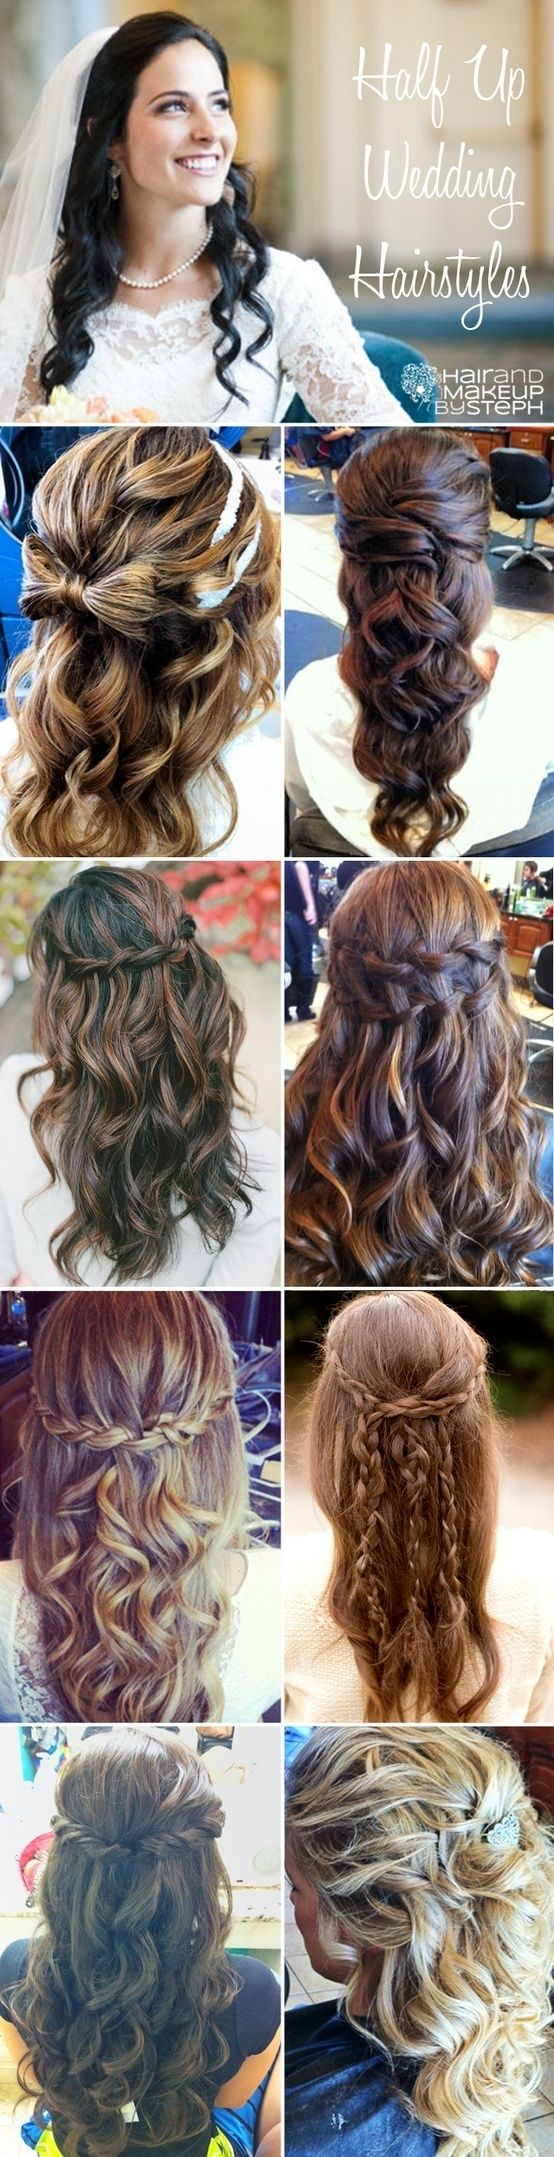 half-up/half-down hairstyles! I just want my hair to curl like that please somebody tell me how to do it easily with the little time that I have